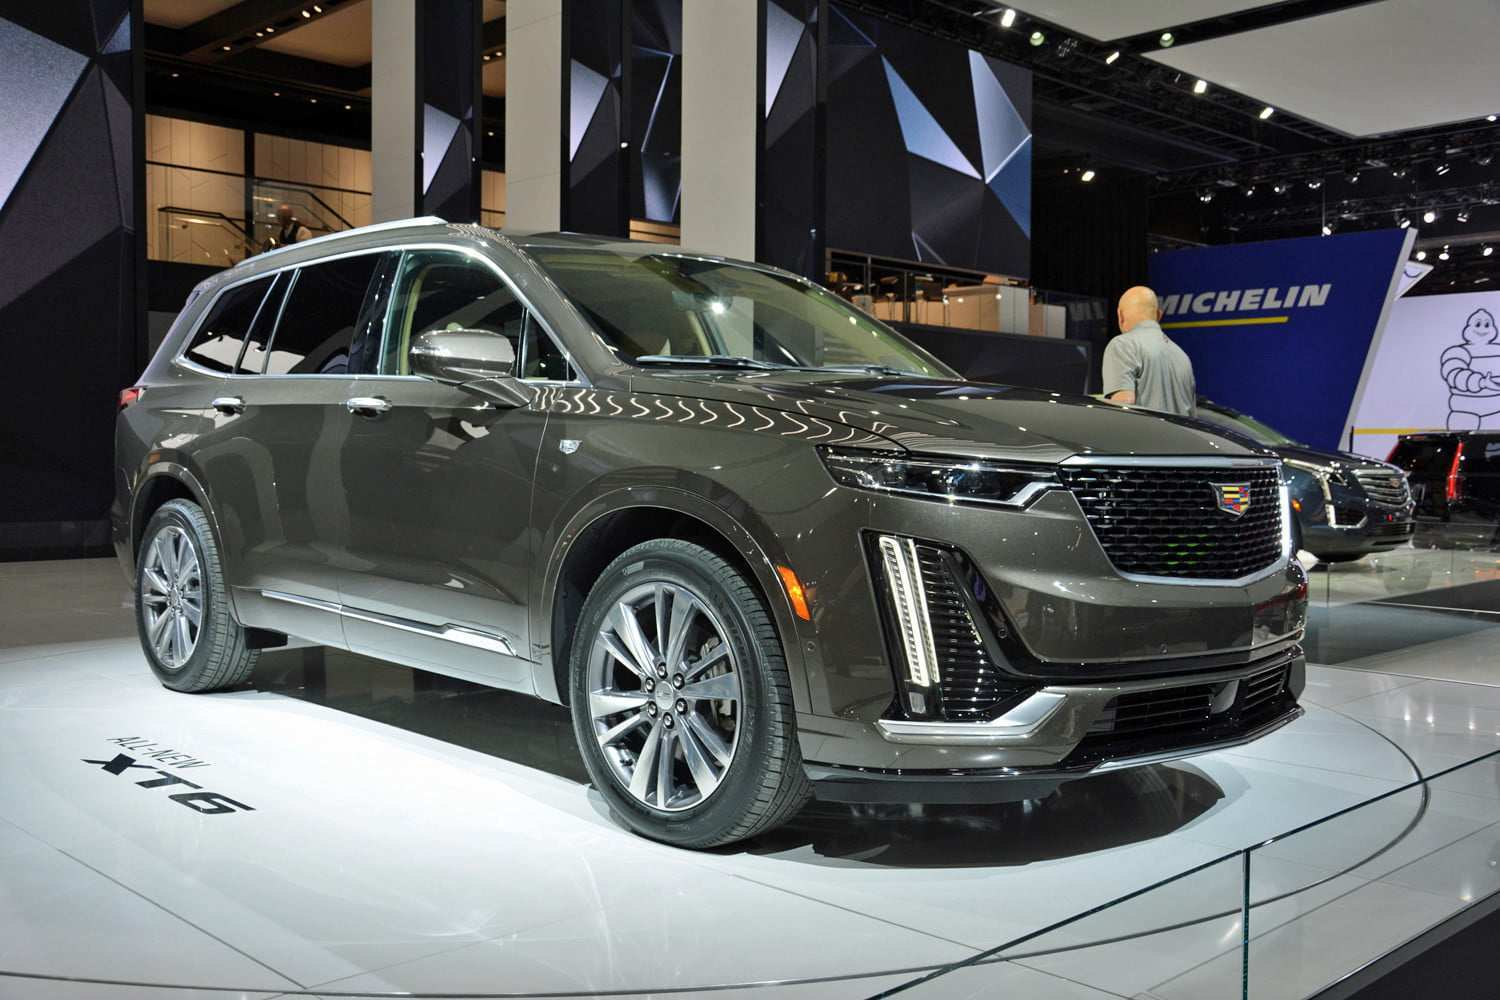 14 Great 2020 Cadillac Xt6 Availability Reviews for 2020 Cadillac Xt6 Availability